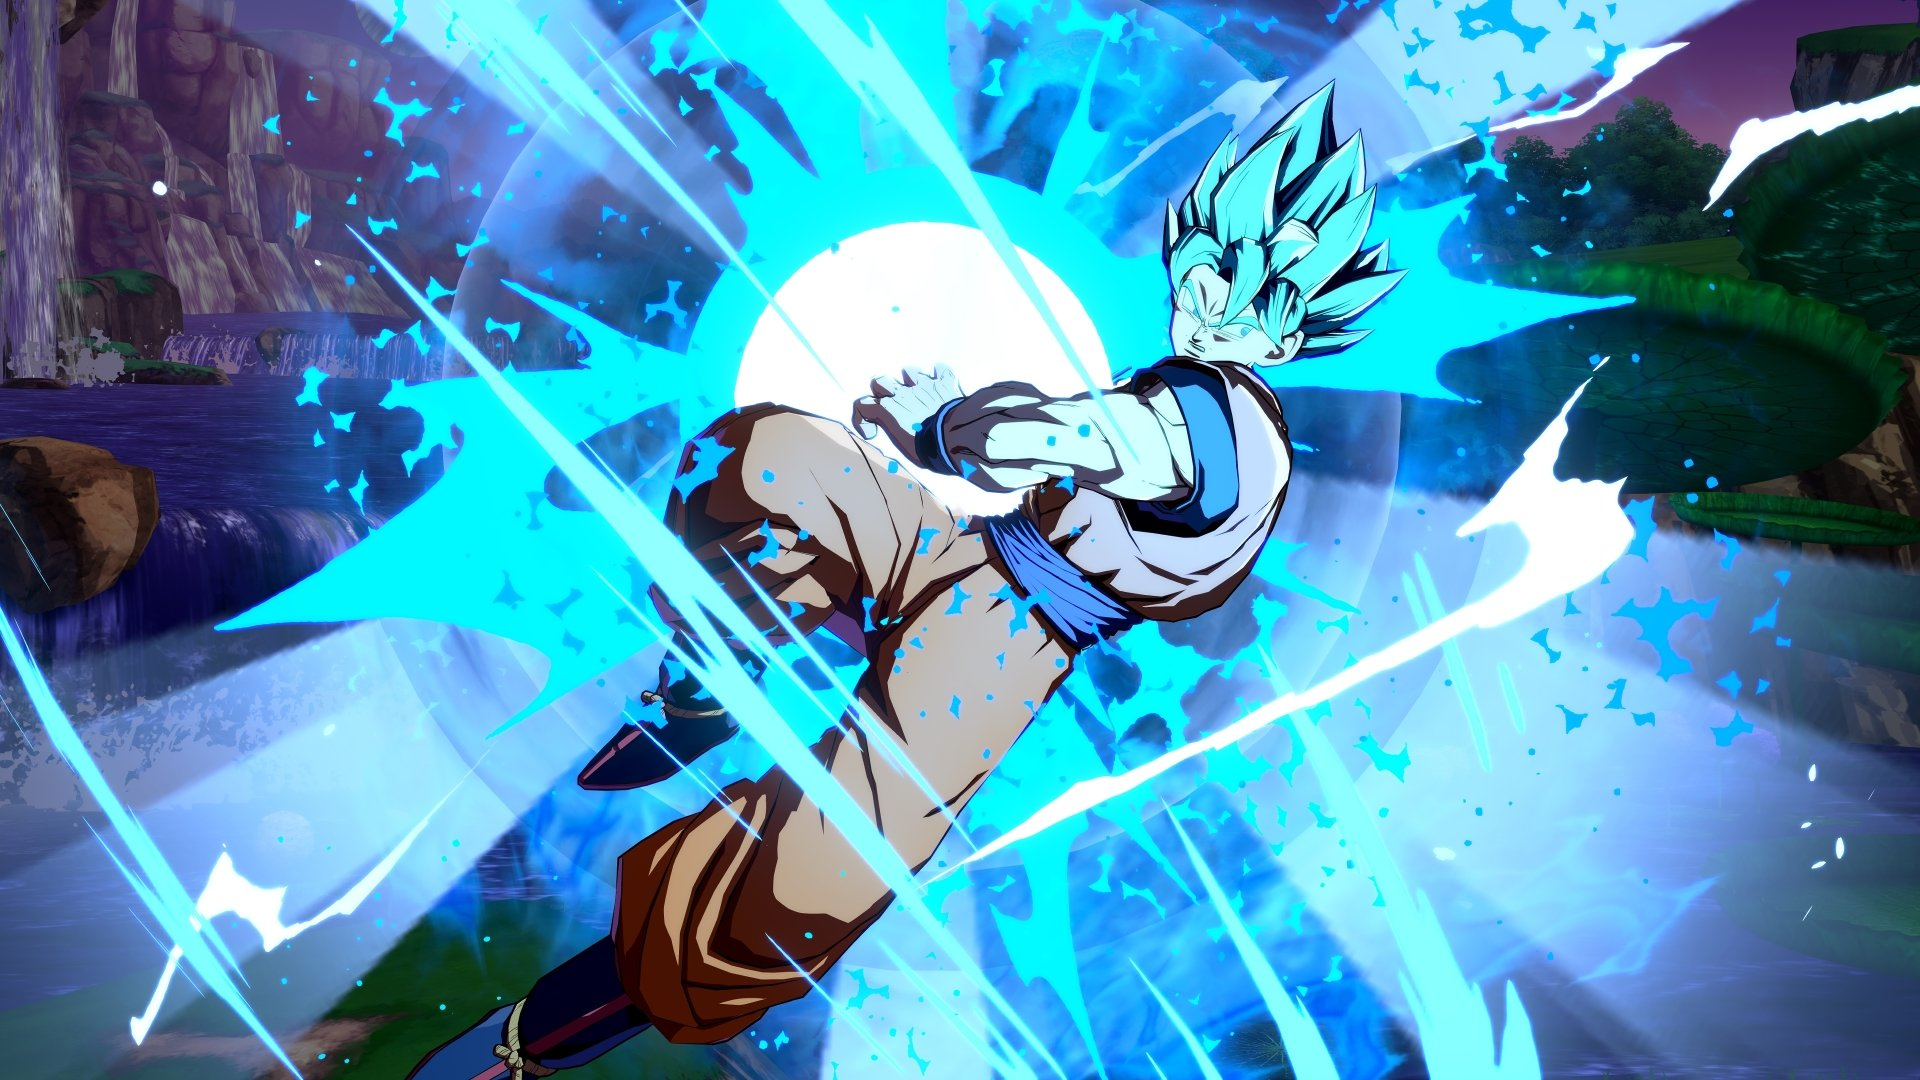 Hd Broly Wallpaper 龙珠斗士z 4k Ultra 高清壁纸 桌面背景 3840x2160 Id 933303